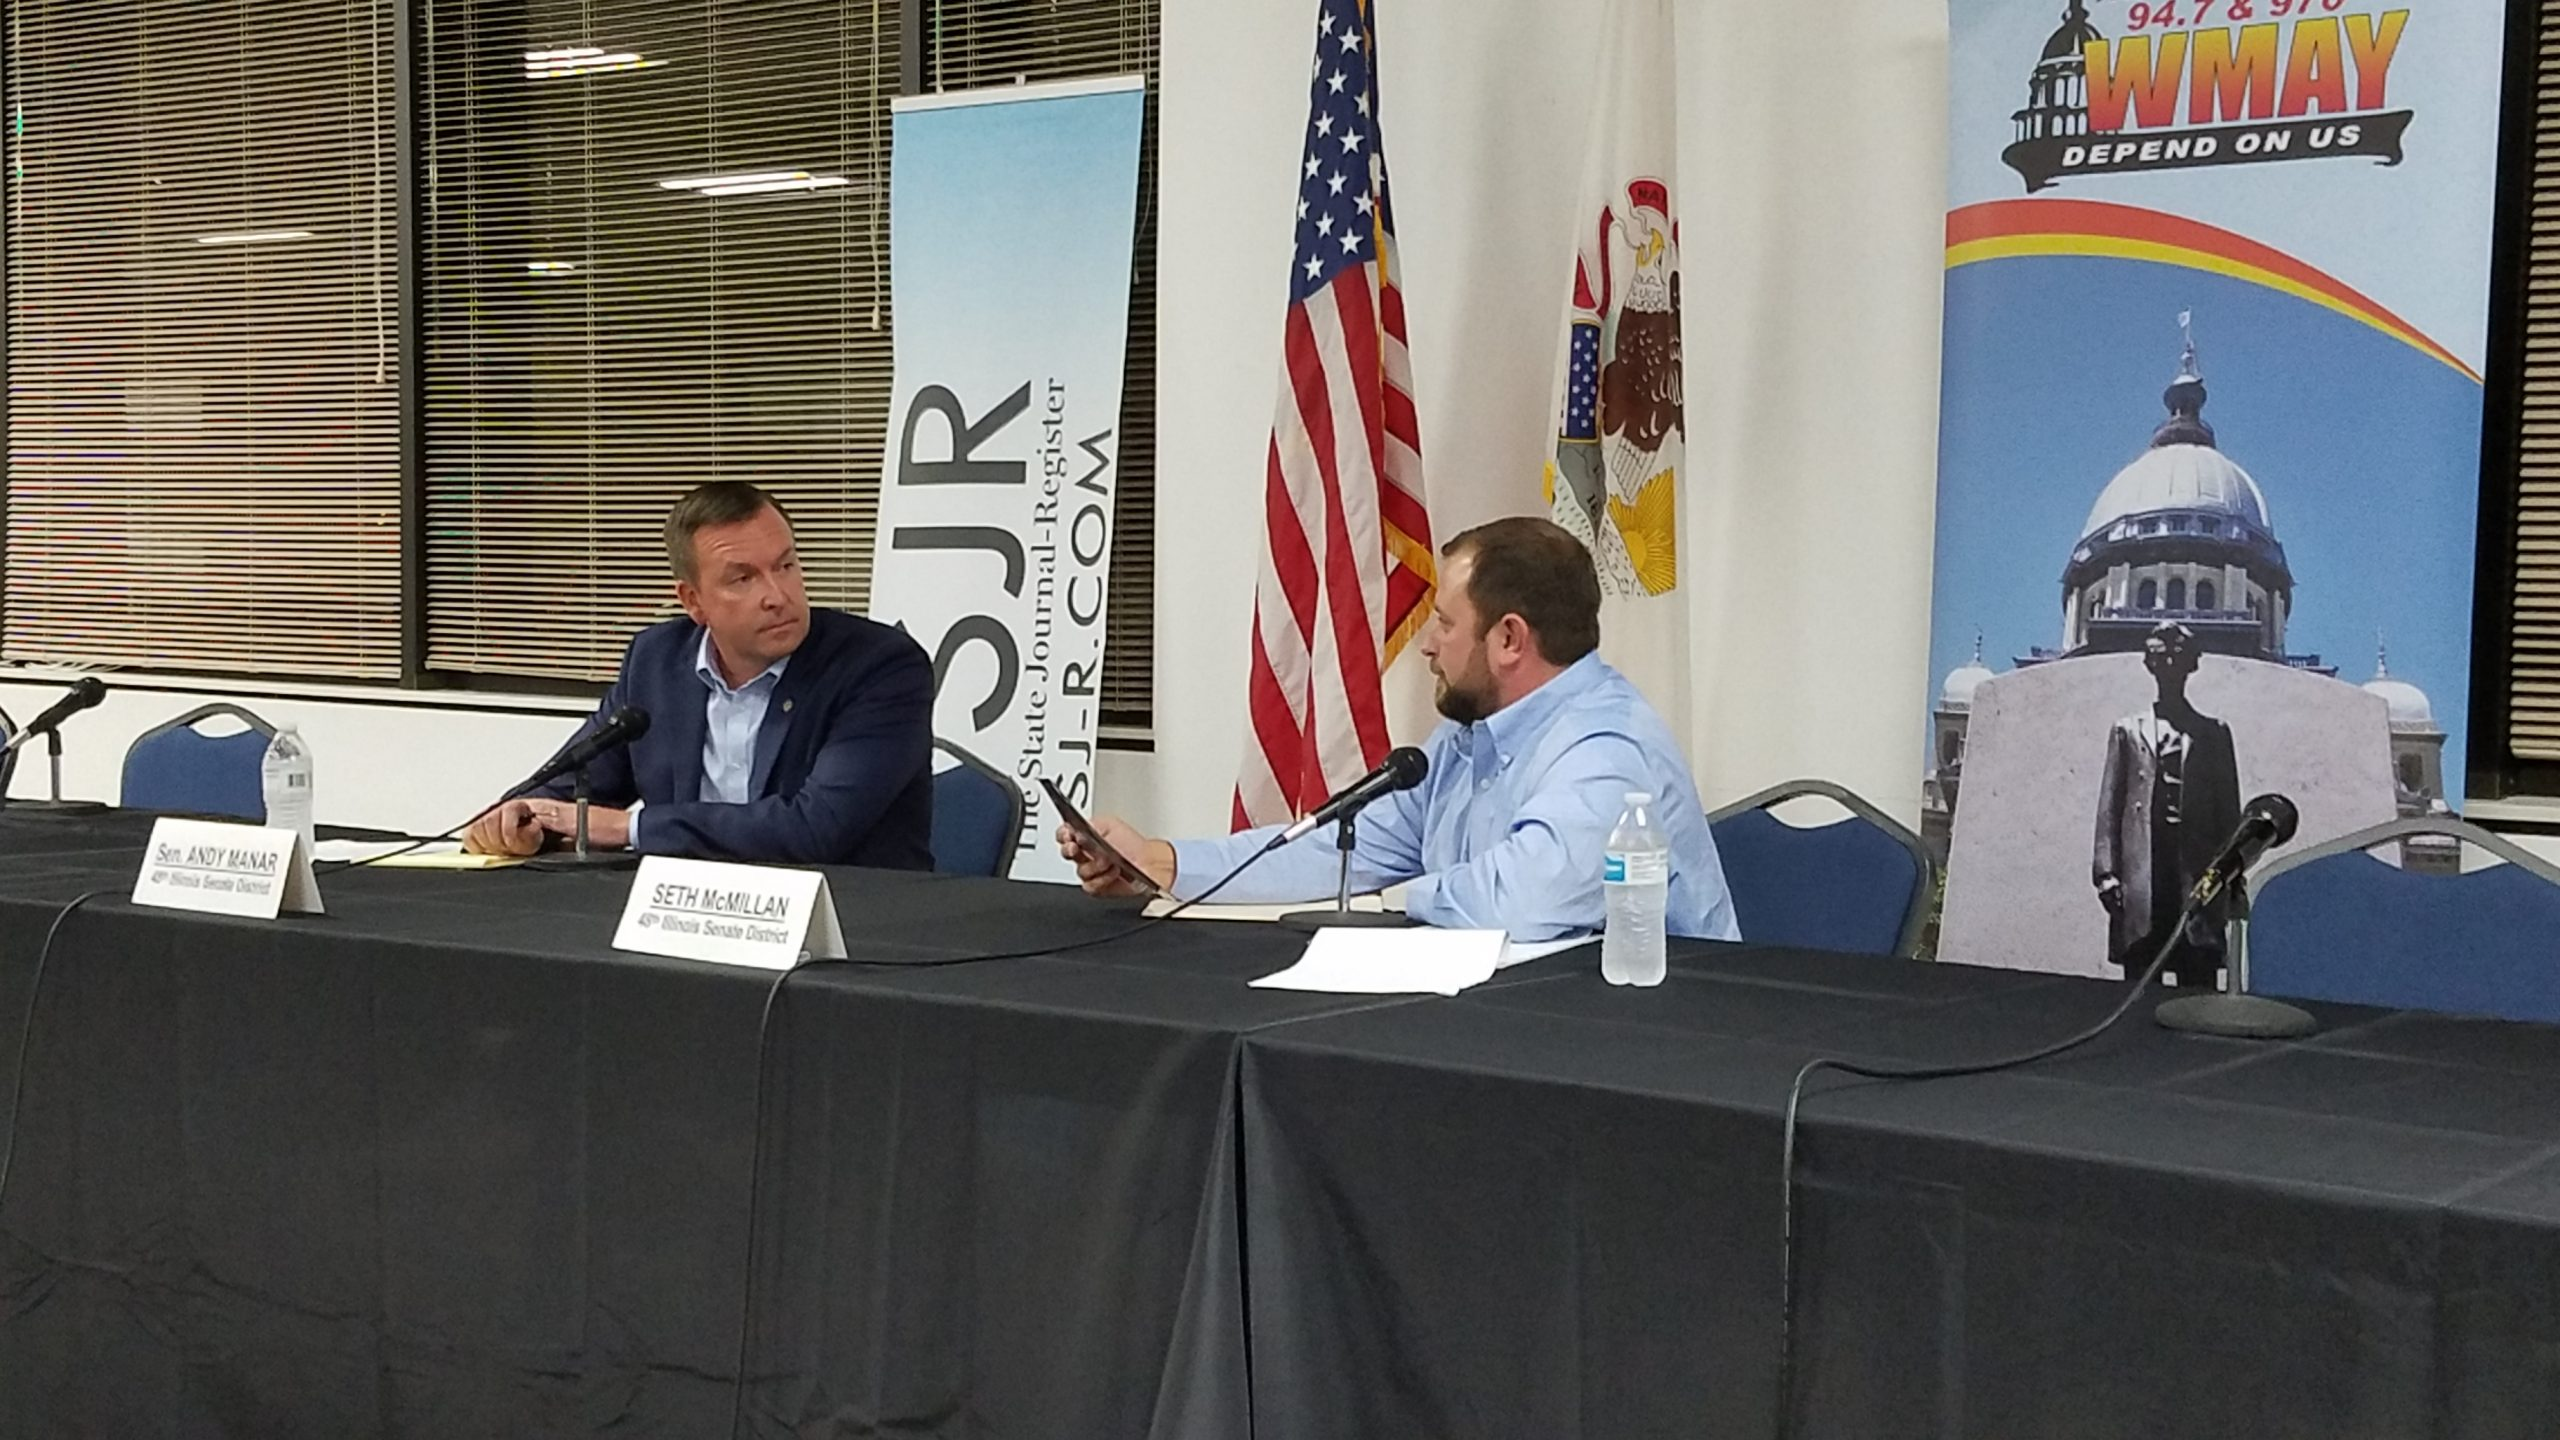 State Senate Candidates Clash In Live Forum On WMAY